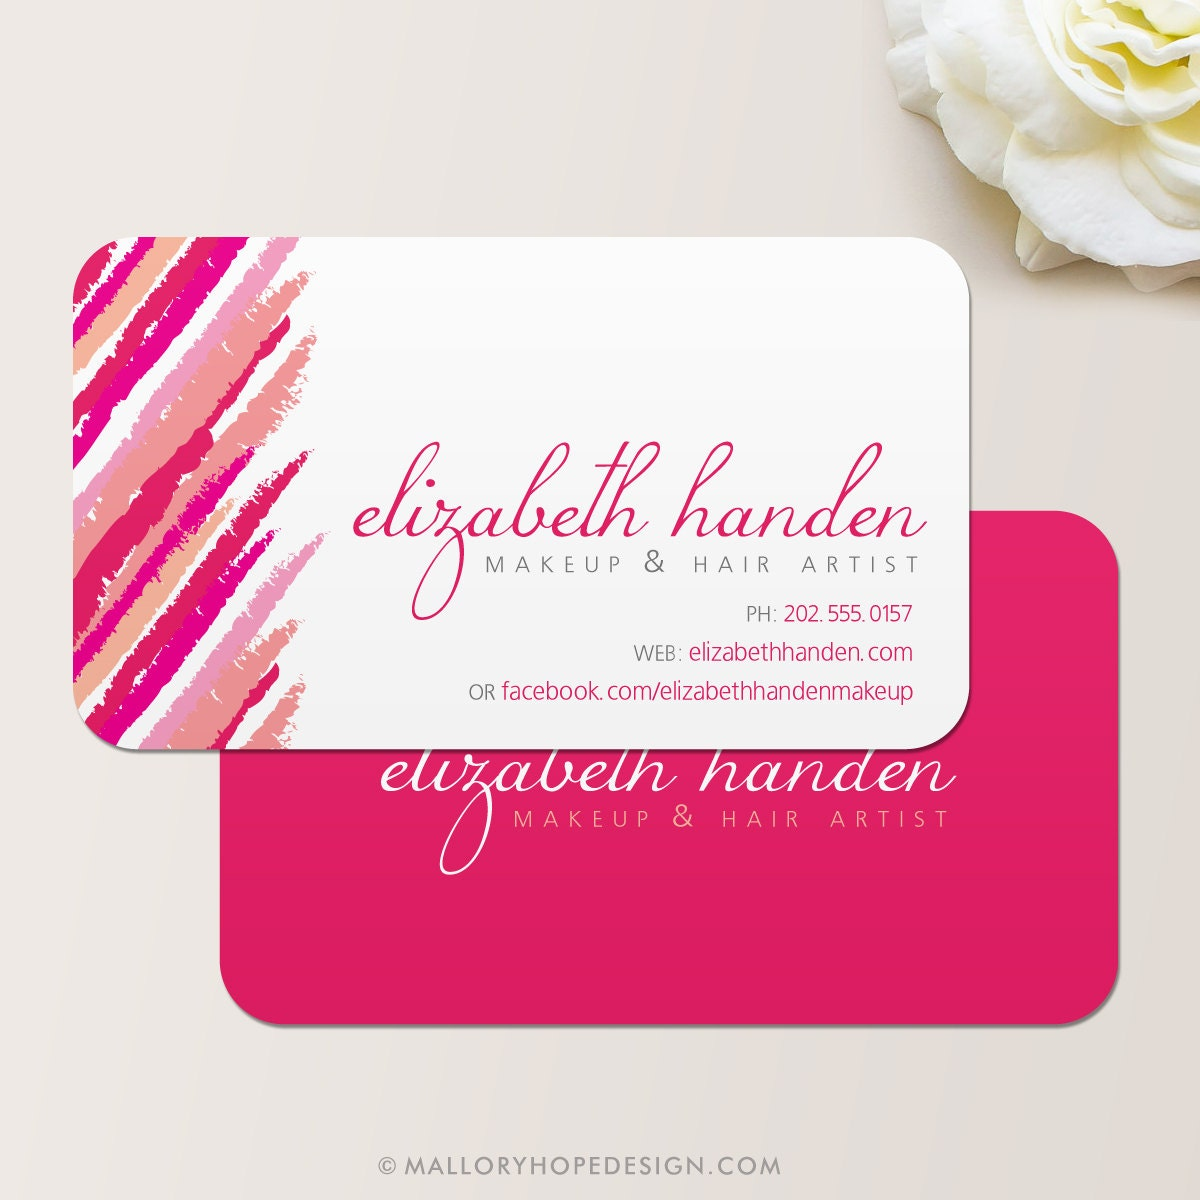 Cute cosmetic business cards images business card ideas etadamfo makeup artist lipstick business card calling card mommy colourmoves Gallery